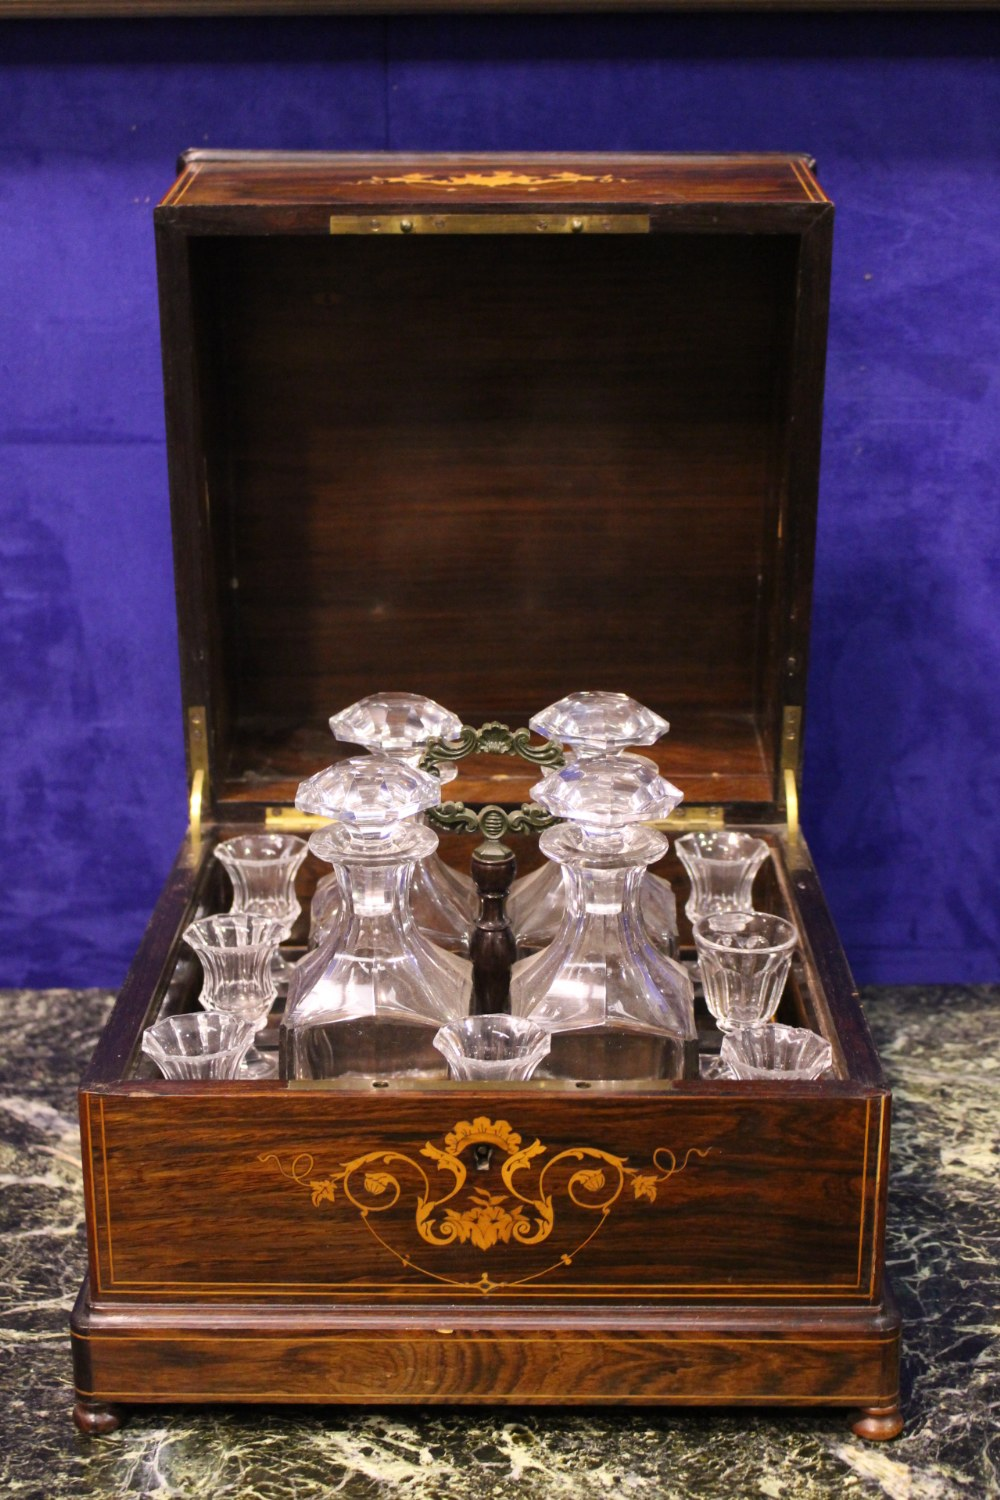 Lot 47 - A ROSEWOOD DECANTER BOX, with satinwood inlaid detail, hinged lid opens to reveal four cut glass